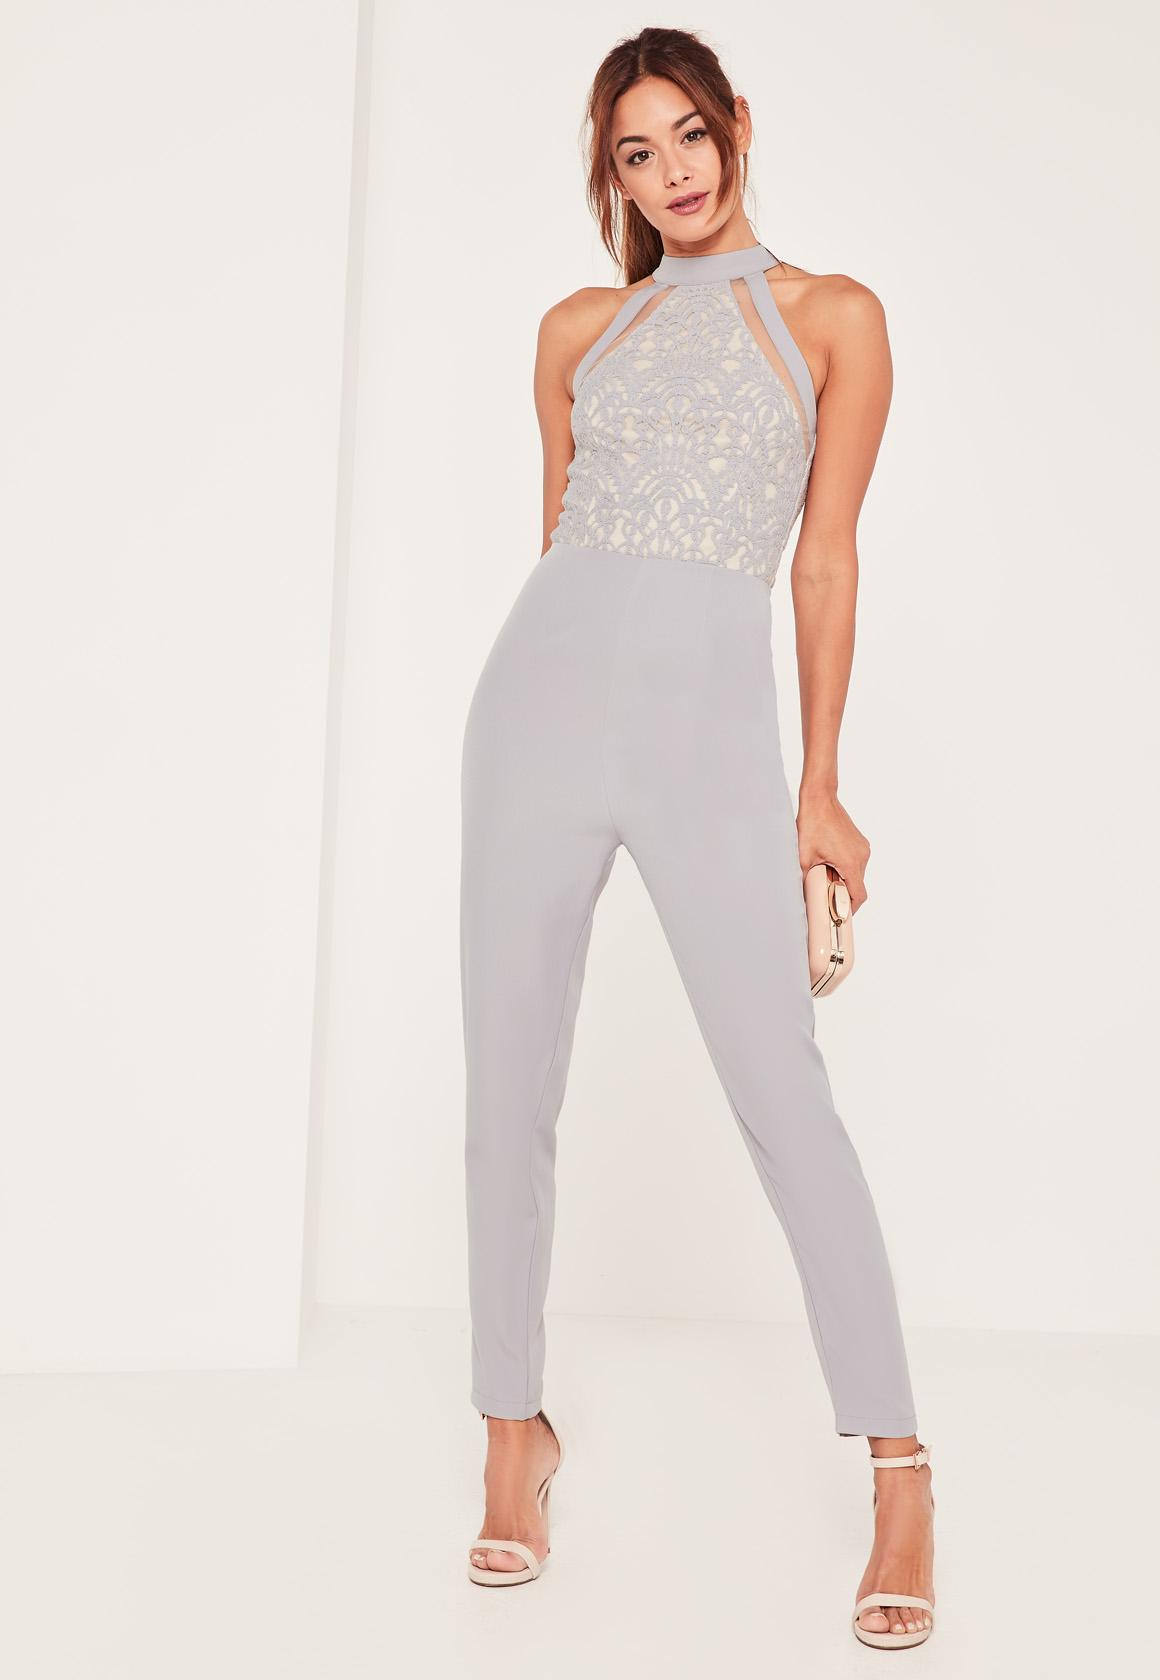 80bdd718d7c Lace White Jumpsuit - Breeze Clothing